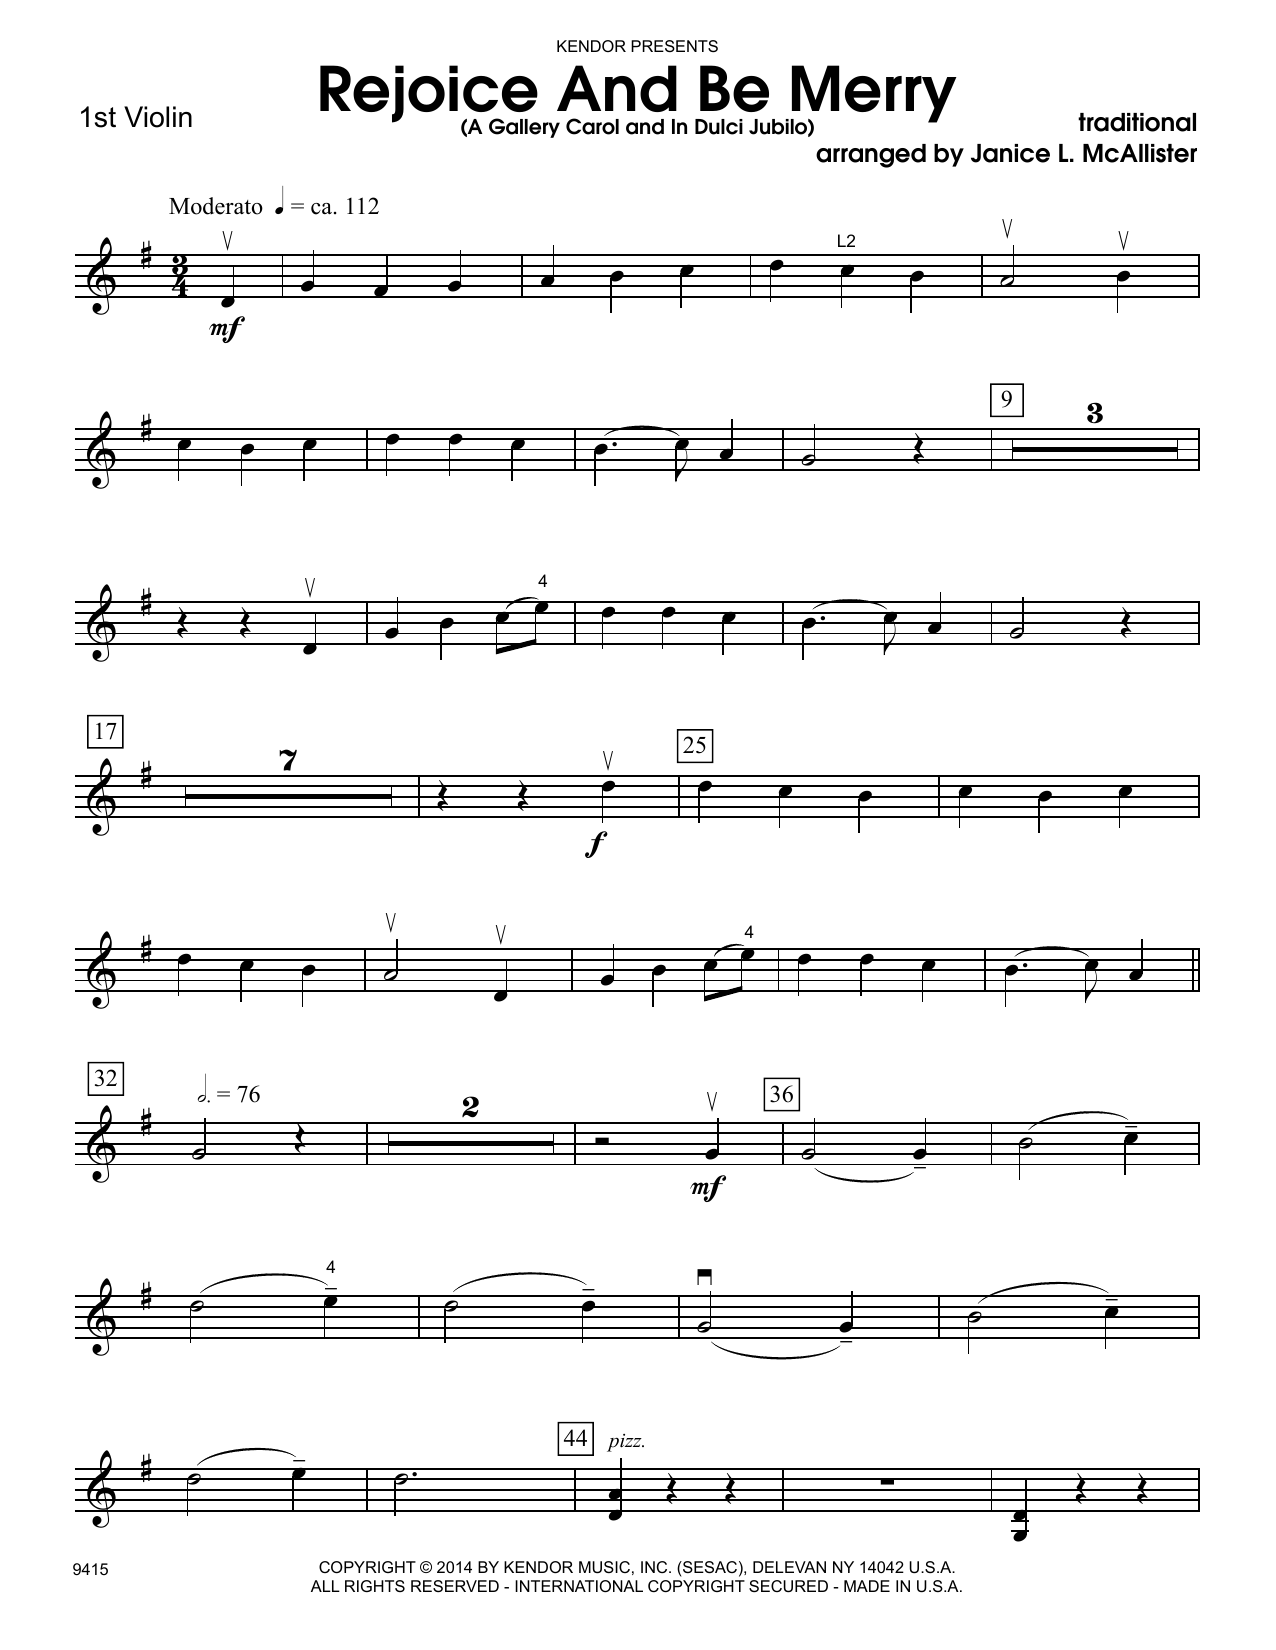 Janice L. McAllister Rejoice And Be Merry (A Gallery Carol and In Dulci Jubilo) - 1st Violin sheet music notes and chords. Download Printable PDF.